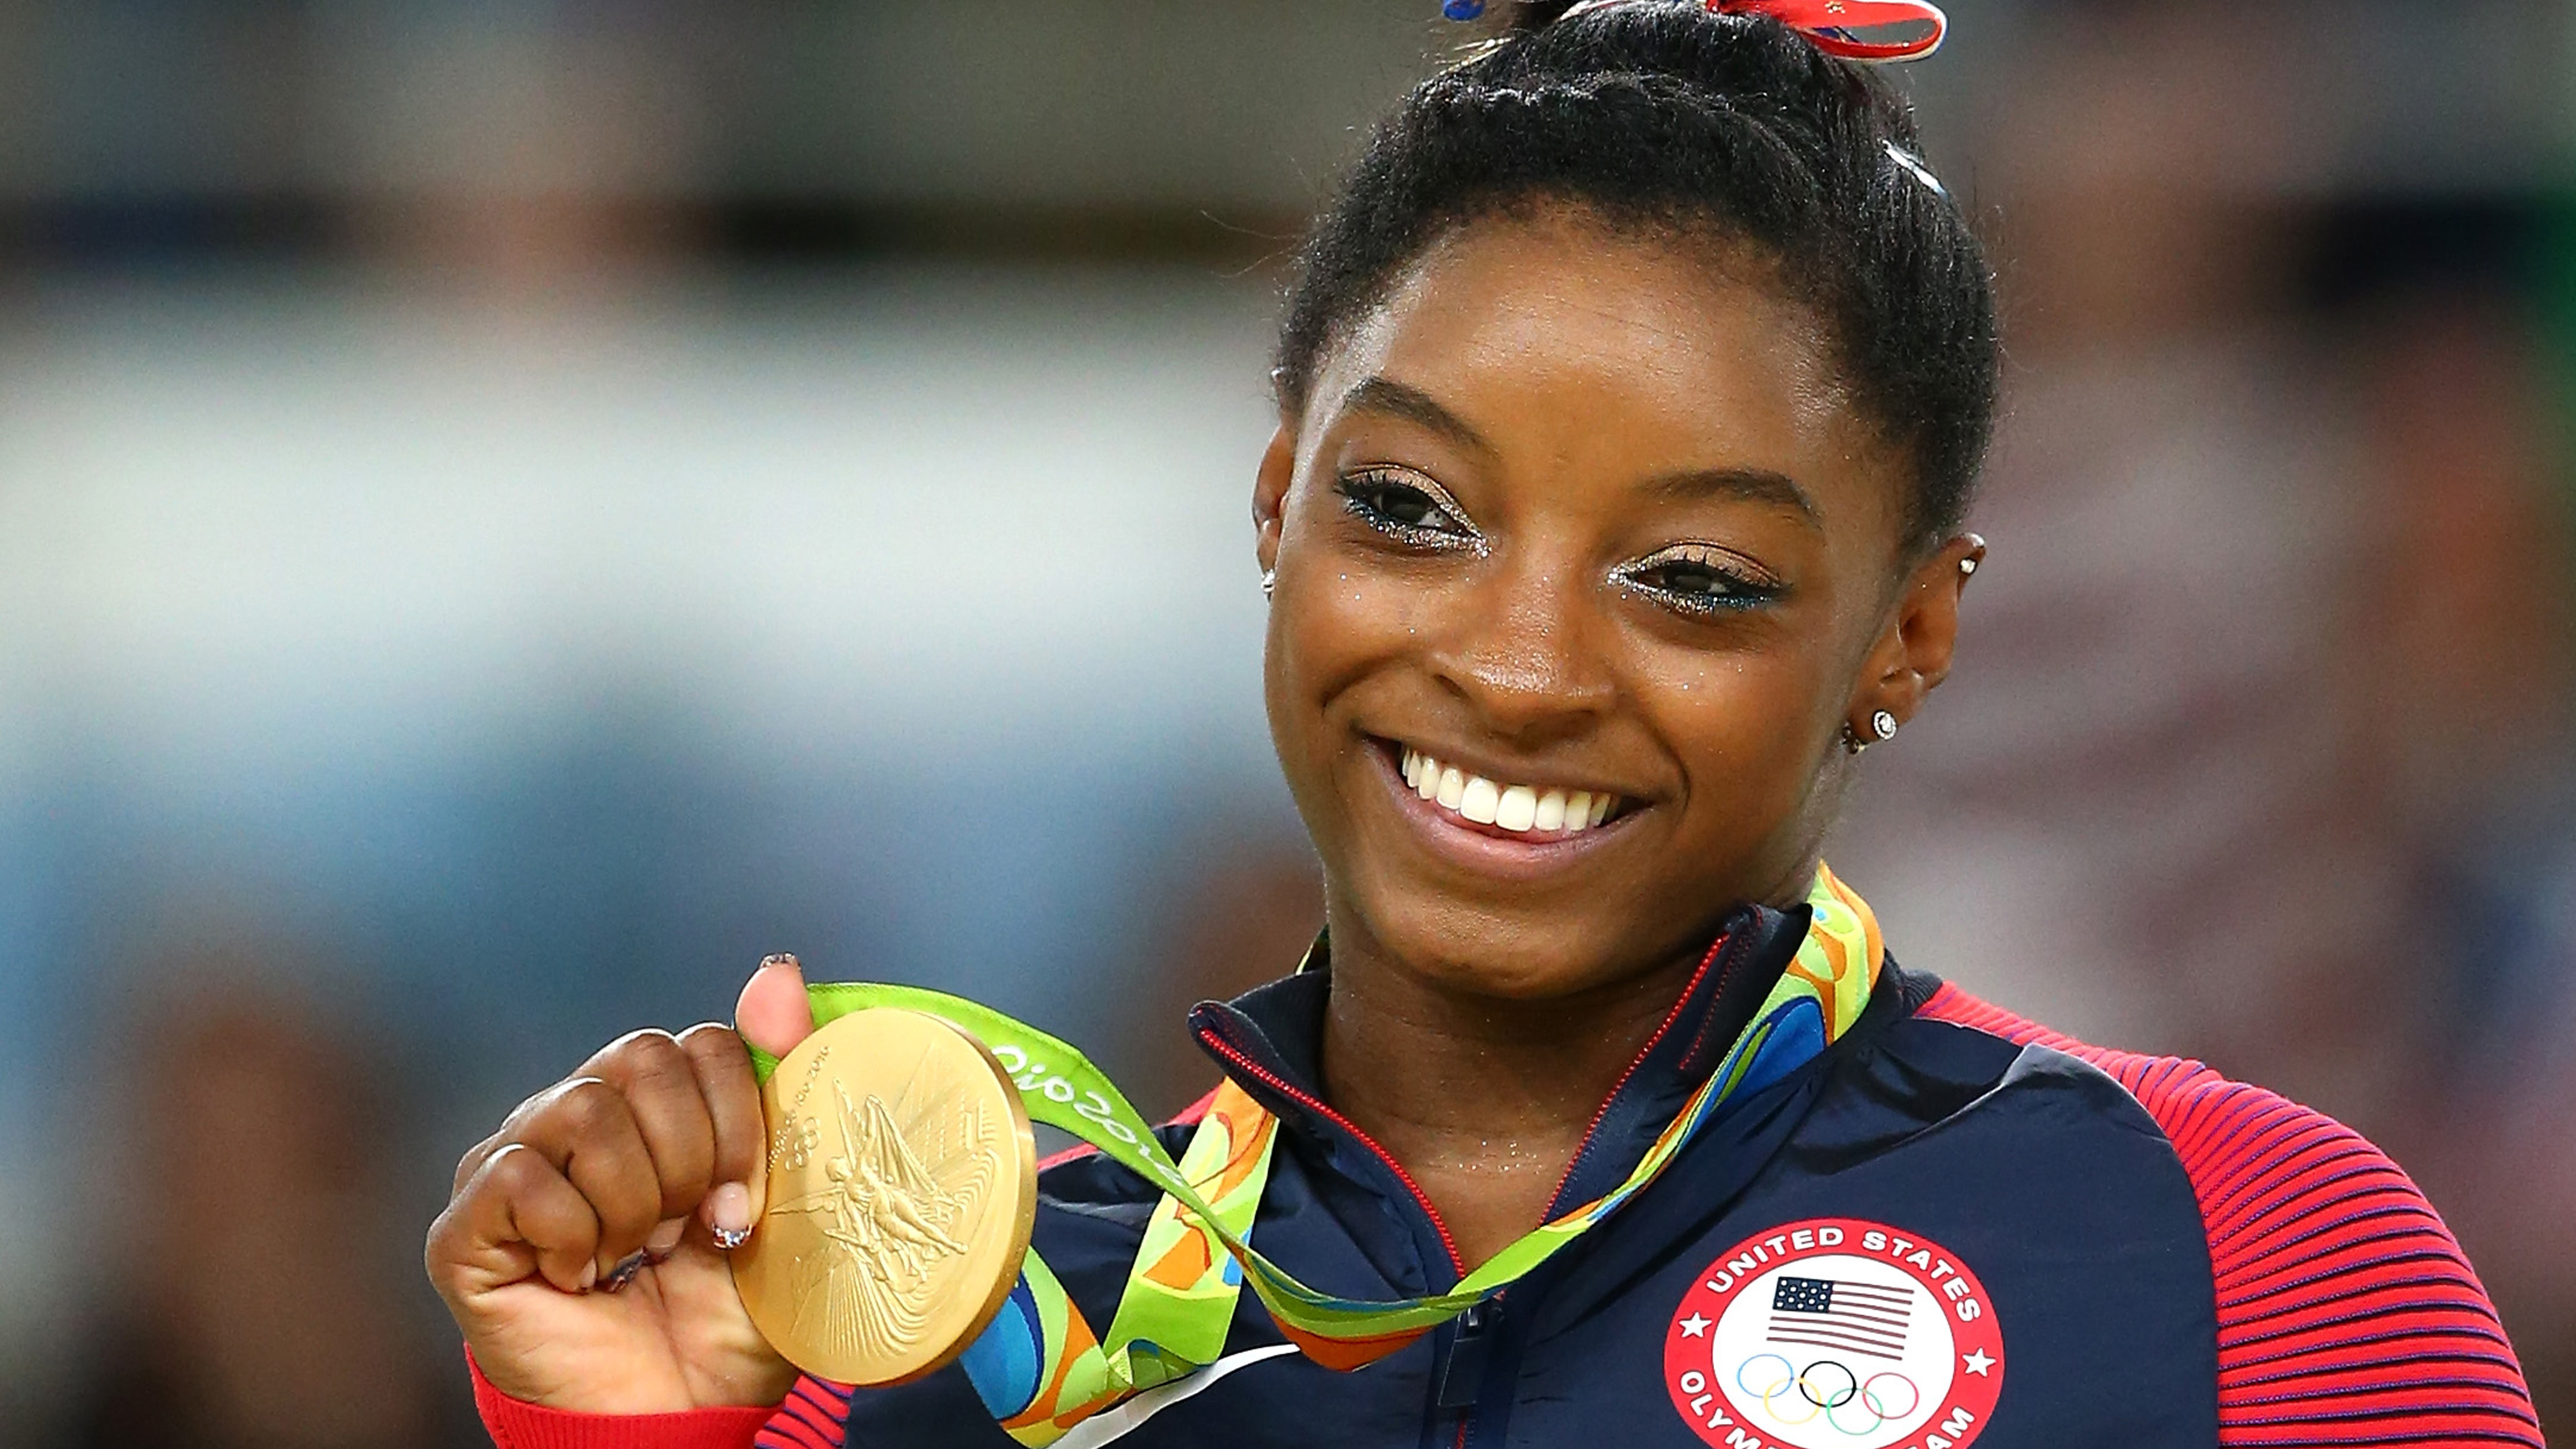 12 Top Olympians and Their Hometowns